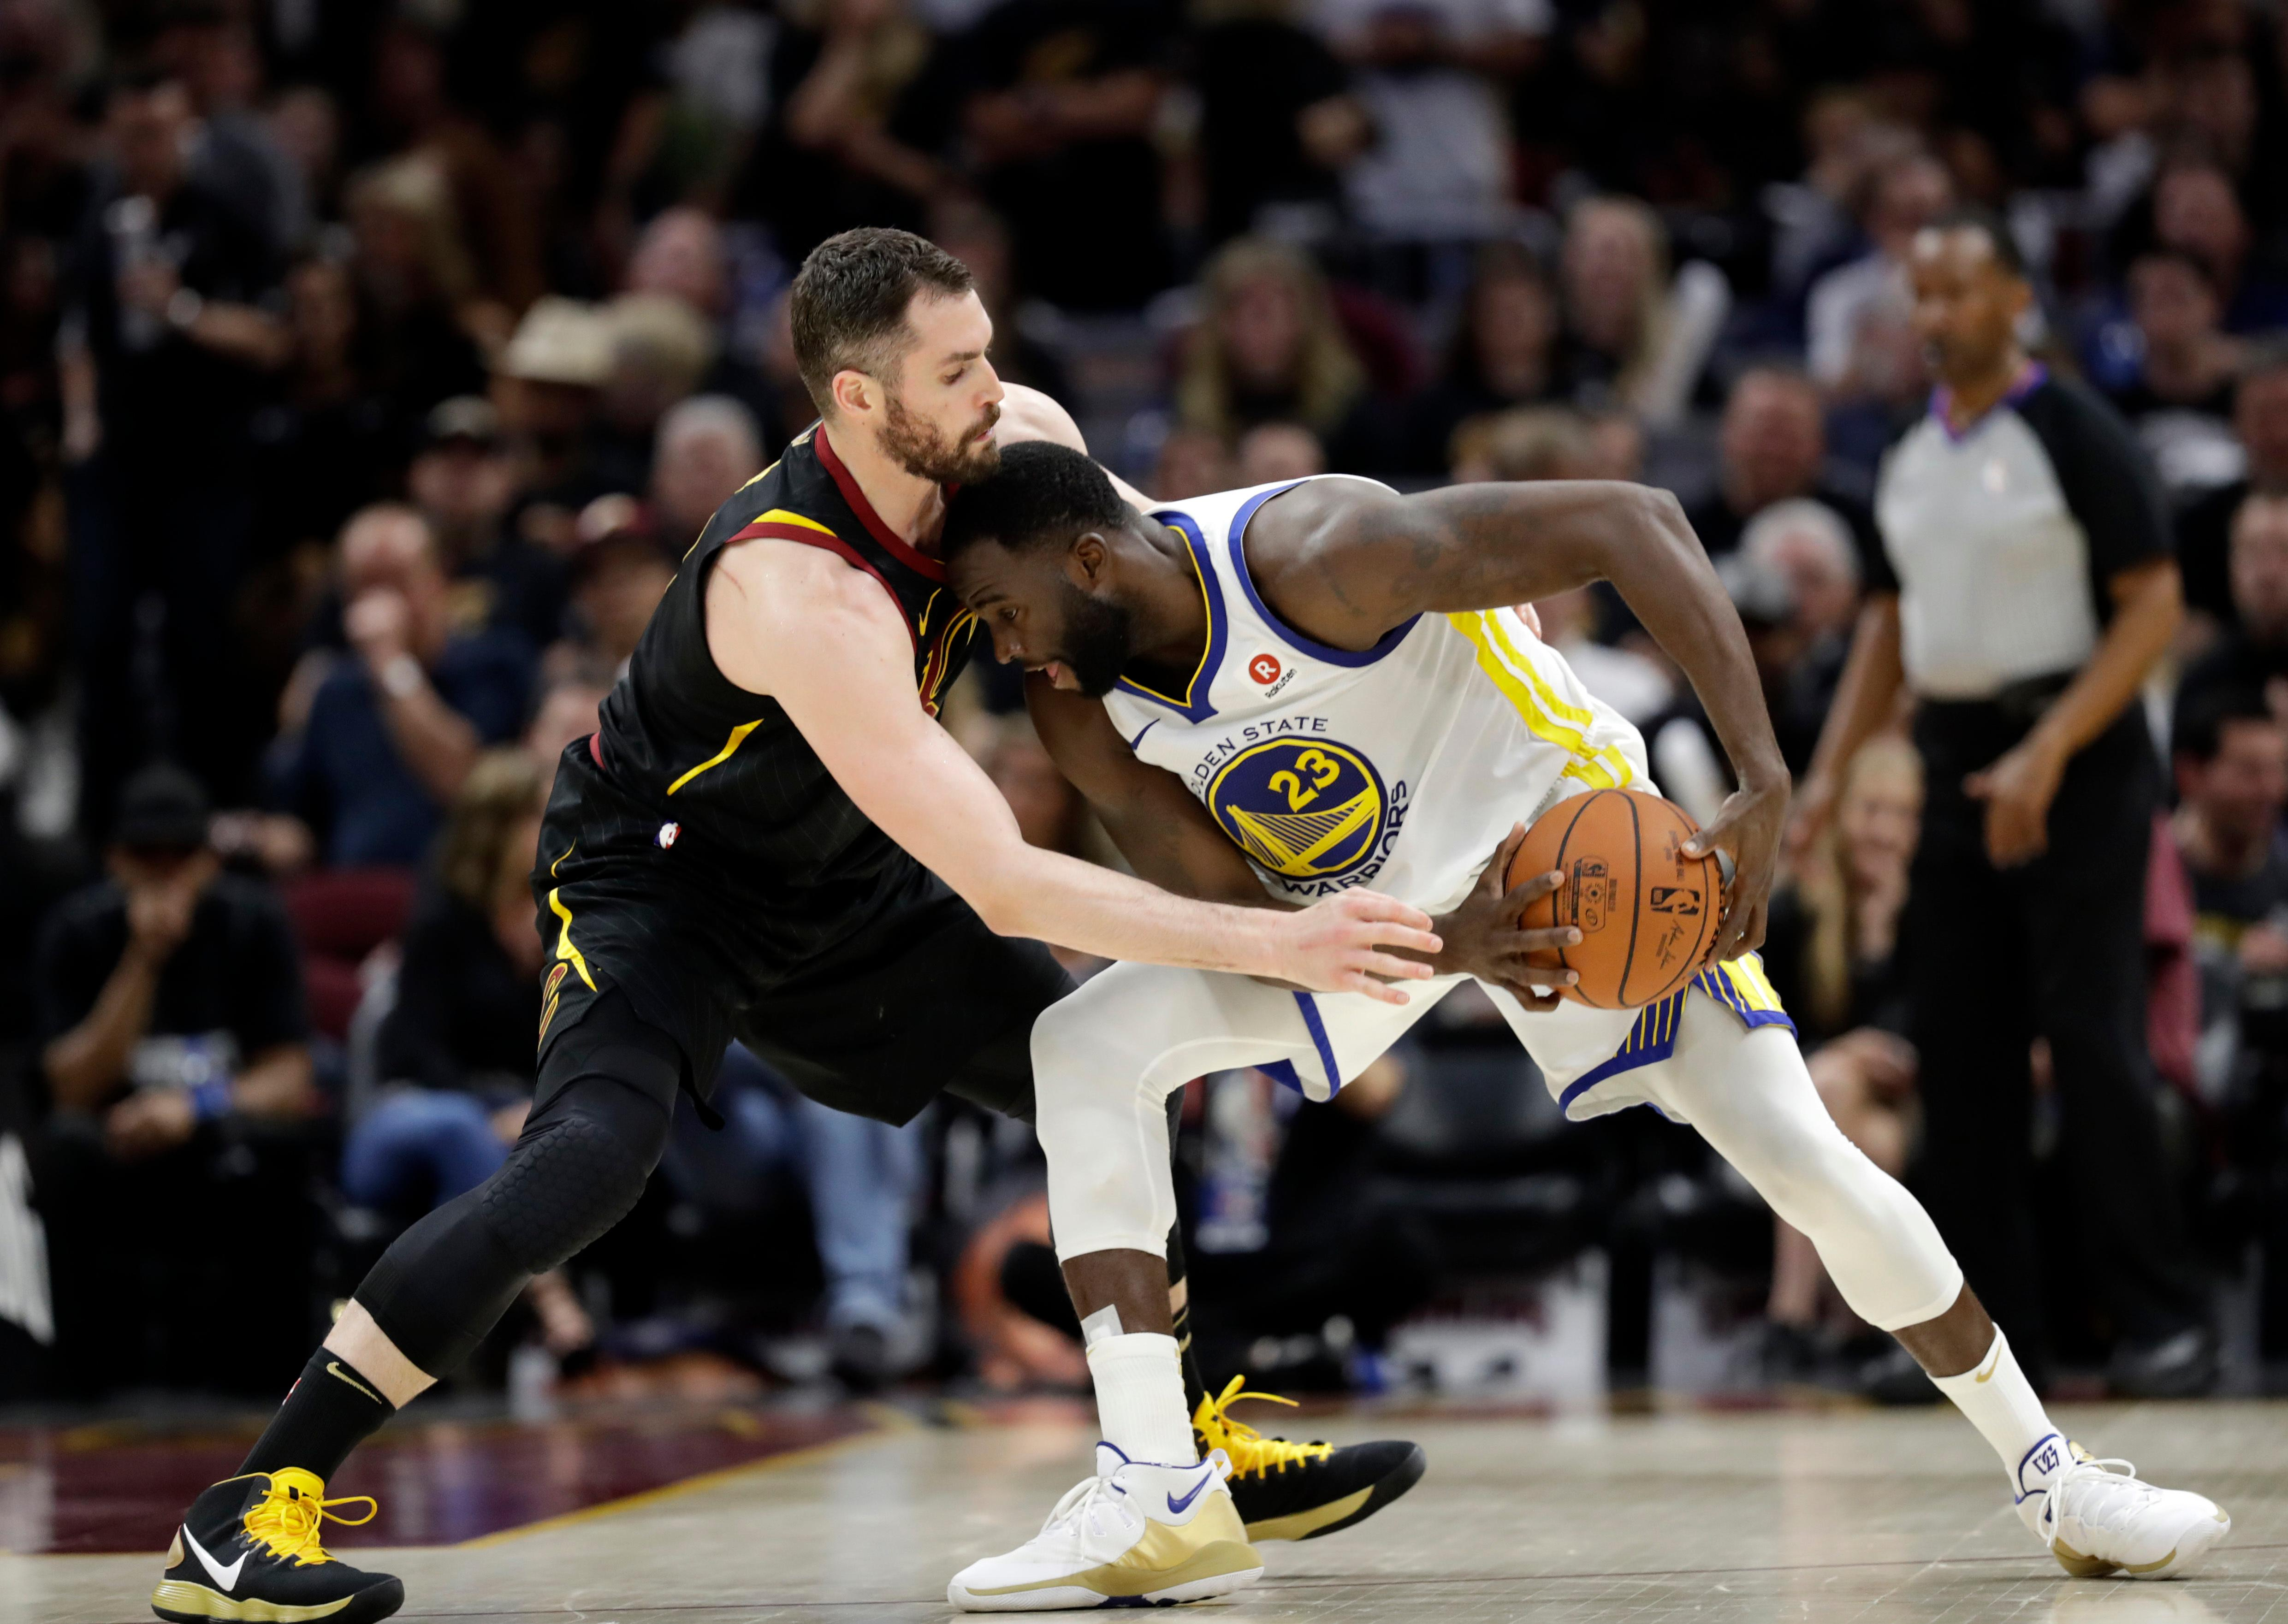 Golden State Warriors' Draymond Green is defended by Cleveland Cavaliers' Kevin Love during the second half of Game 4 of basketball's NBA Finals, Friday, June 8, 2018, in Cleveland. (AP Photo/Tony Dejak)